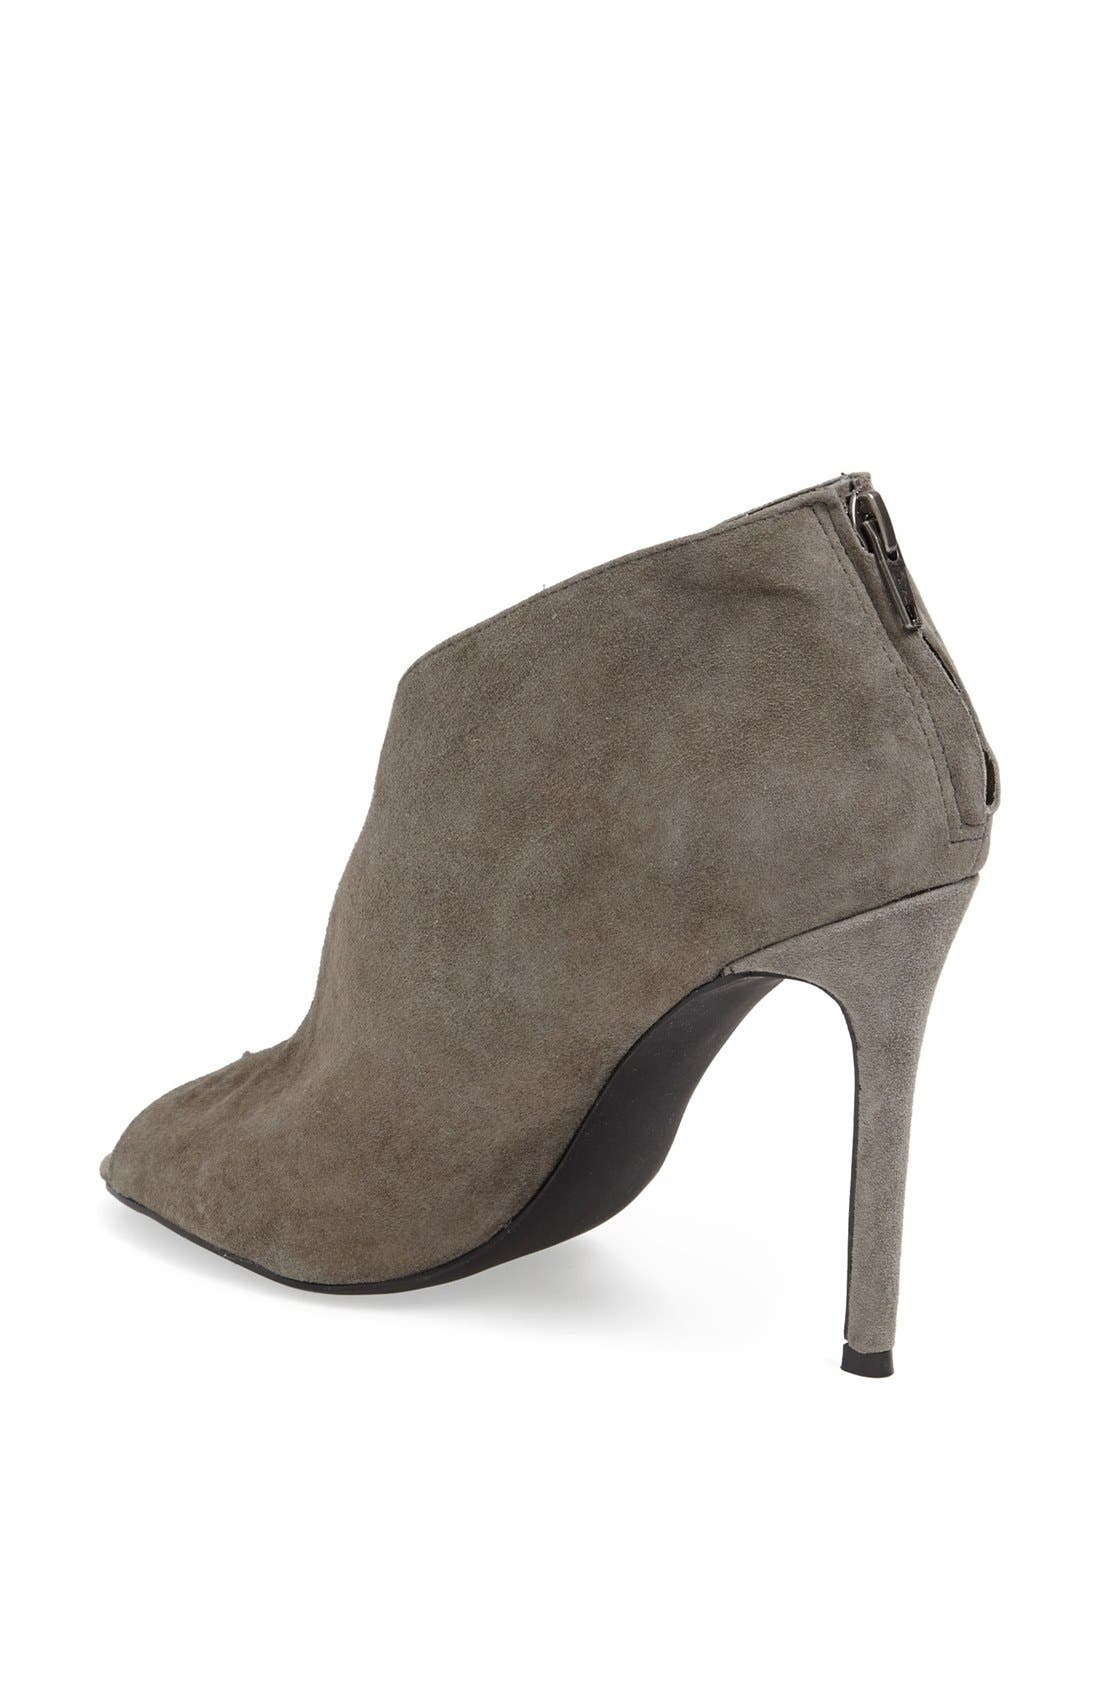 Alternate Image 2  - Steve Madden 'Imaginee' Peep Toe Bootie